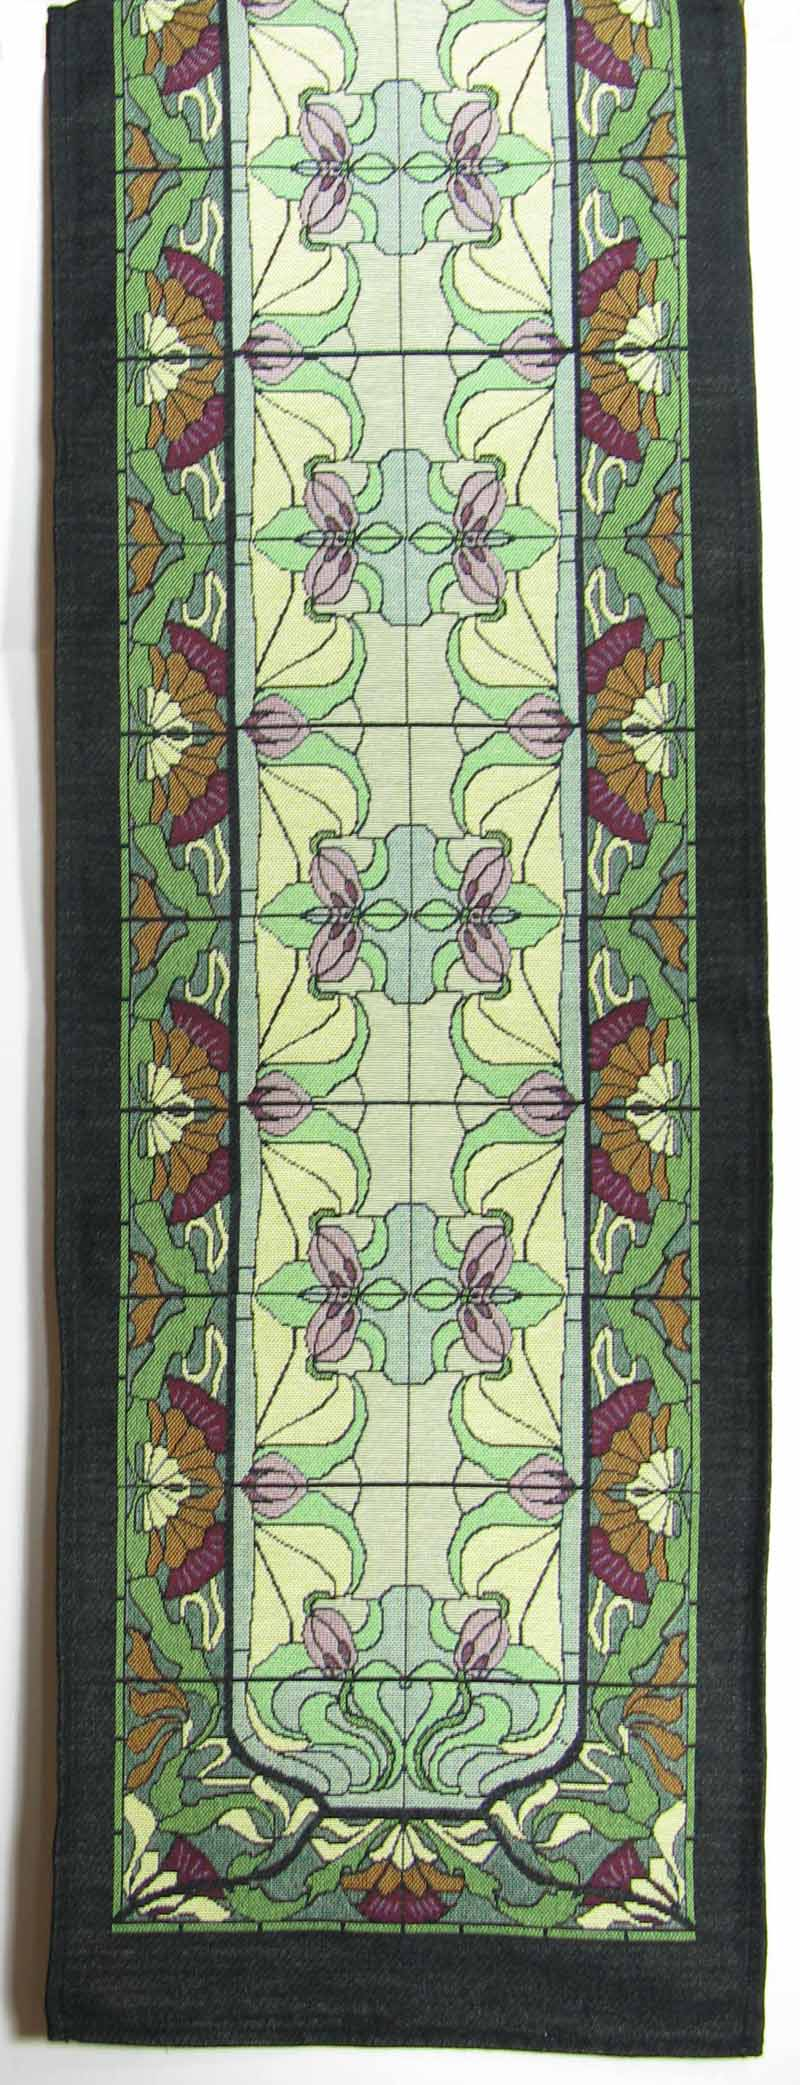 Table Runner - Thistle and Rosebud